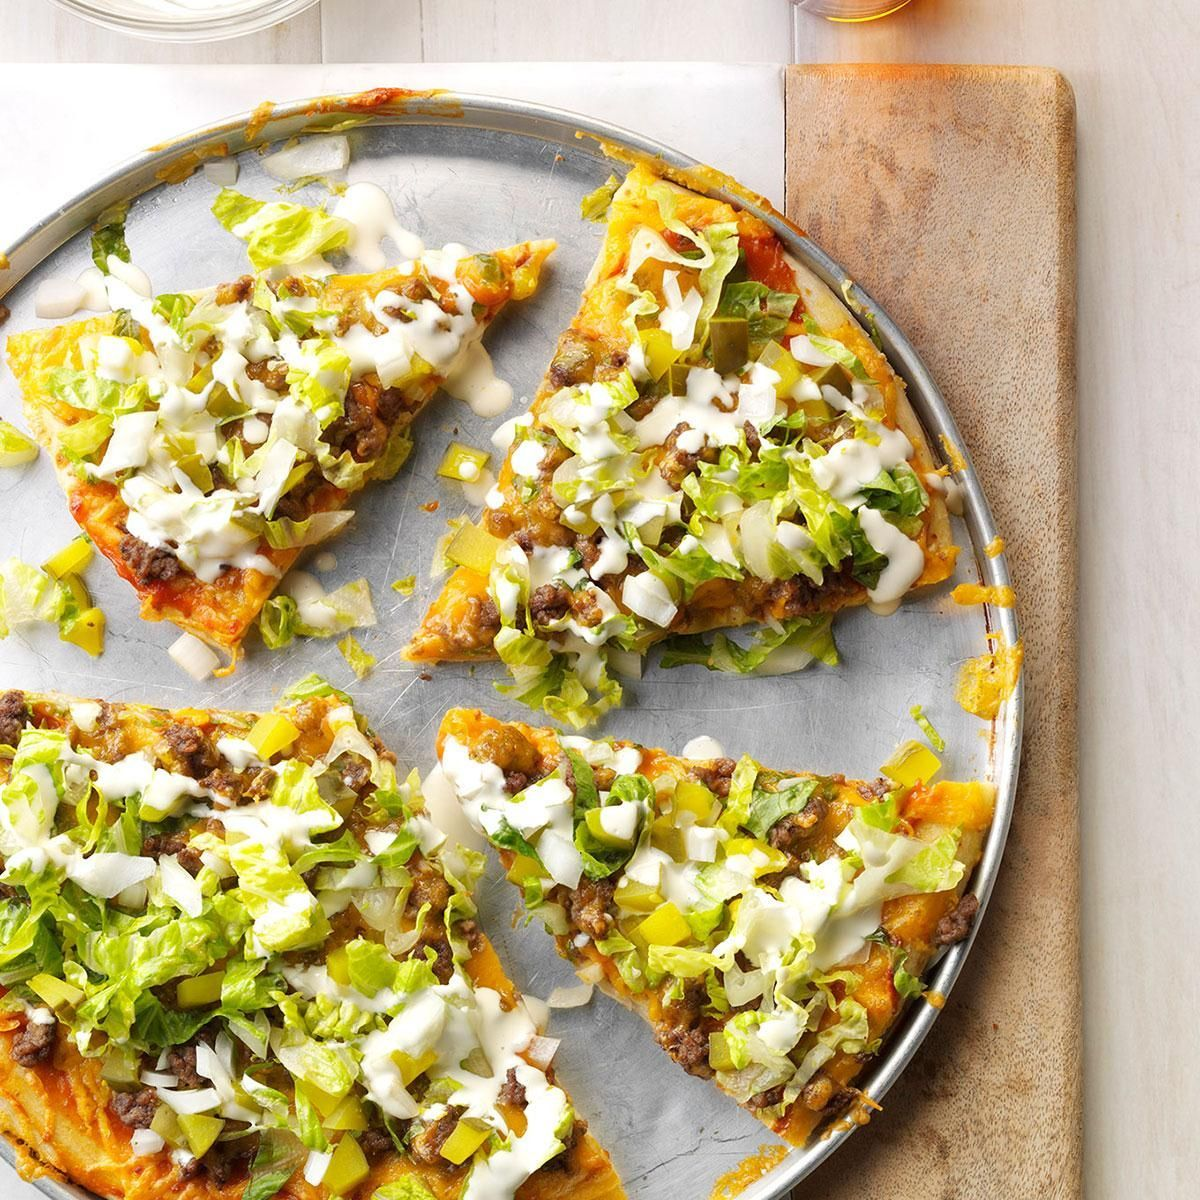 Pickle Hamburger Pizza Dill Pickle Hamburger Pizza Recipe -My husband's favorite foods are pizza and cheeseburgers, so I combined the two in a pizza with mayo and dill pickle juice topping. People who try it start laughing because it's so good. —Angie Zimmerman, Eureka, IllinoisCombined  Combined may refer to: